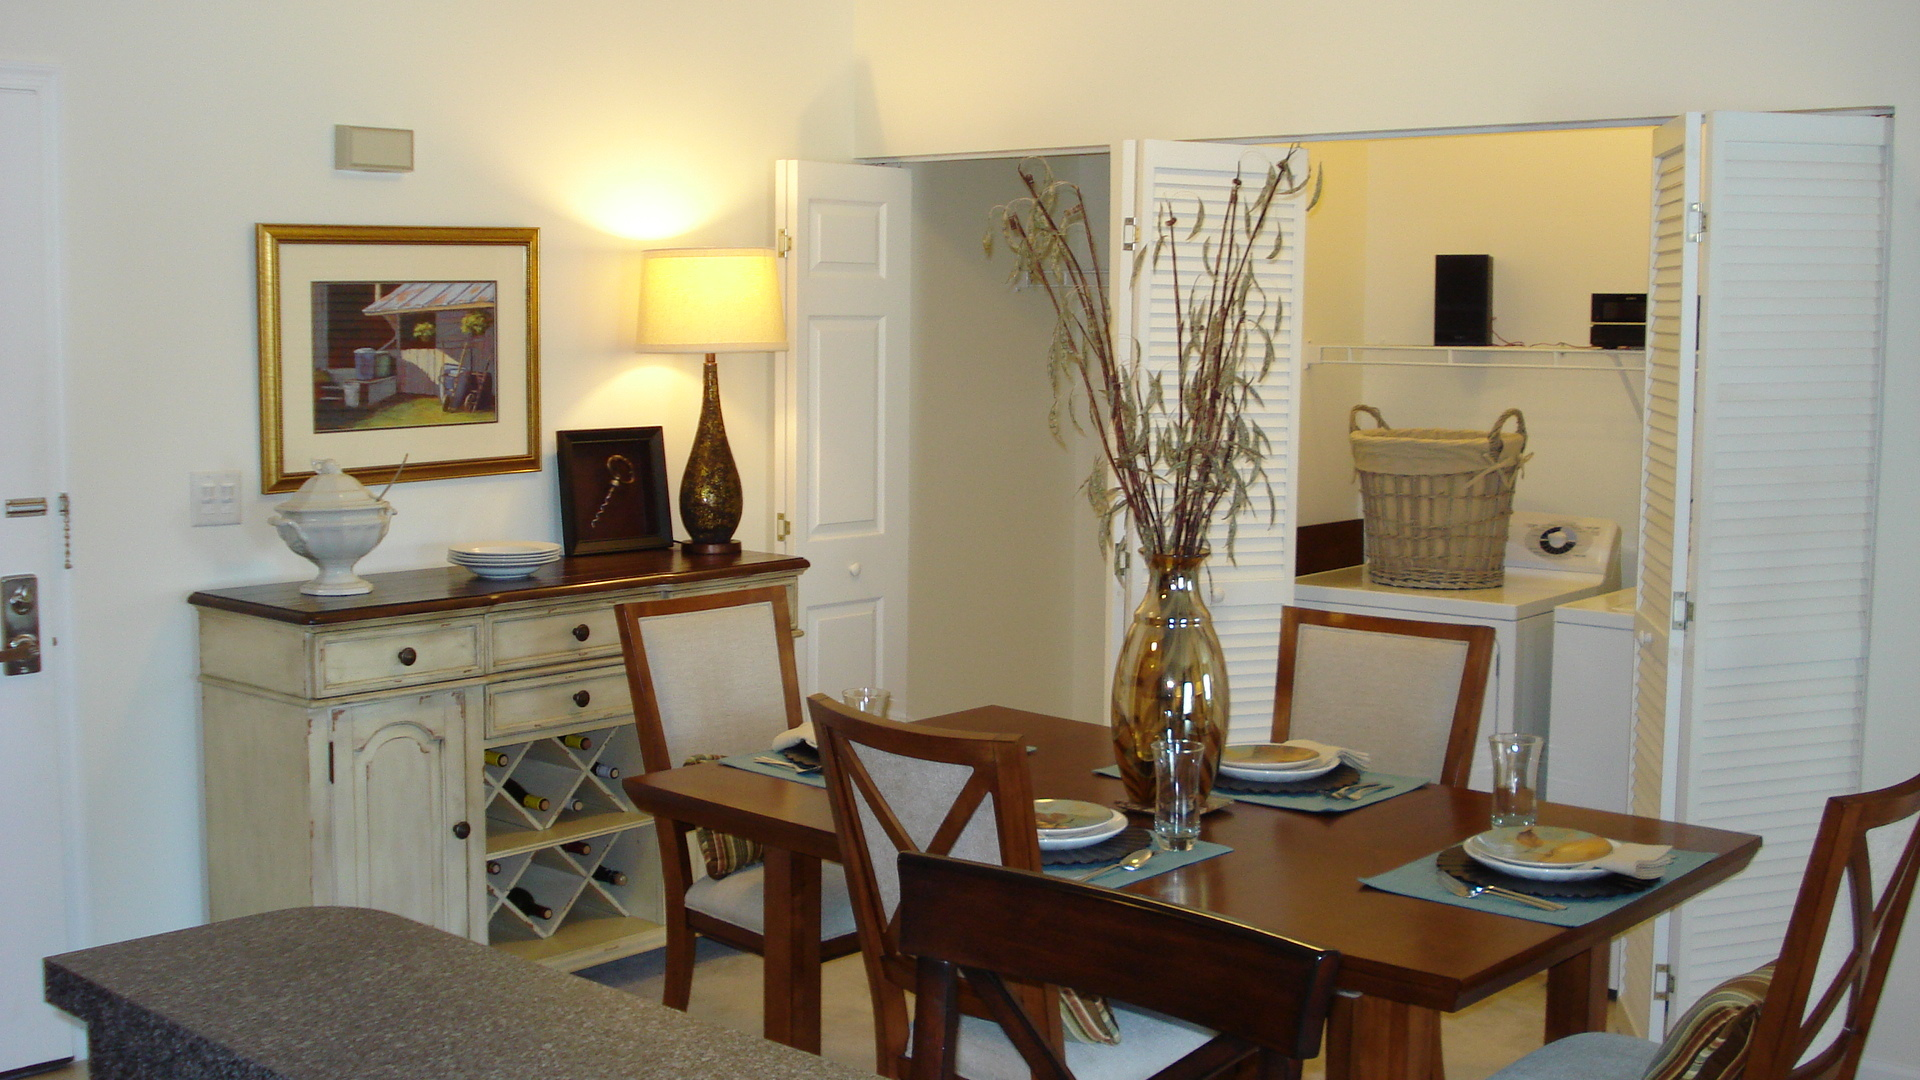 Corporate furnished housing in Carlisle PA